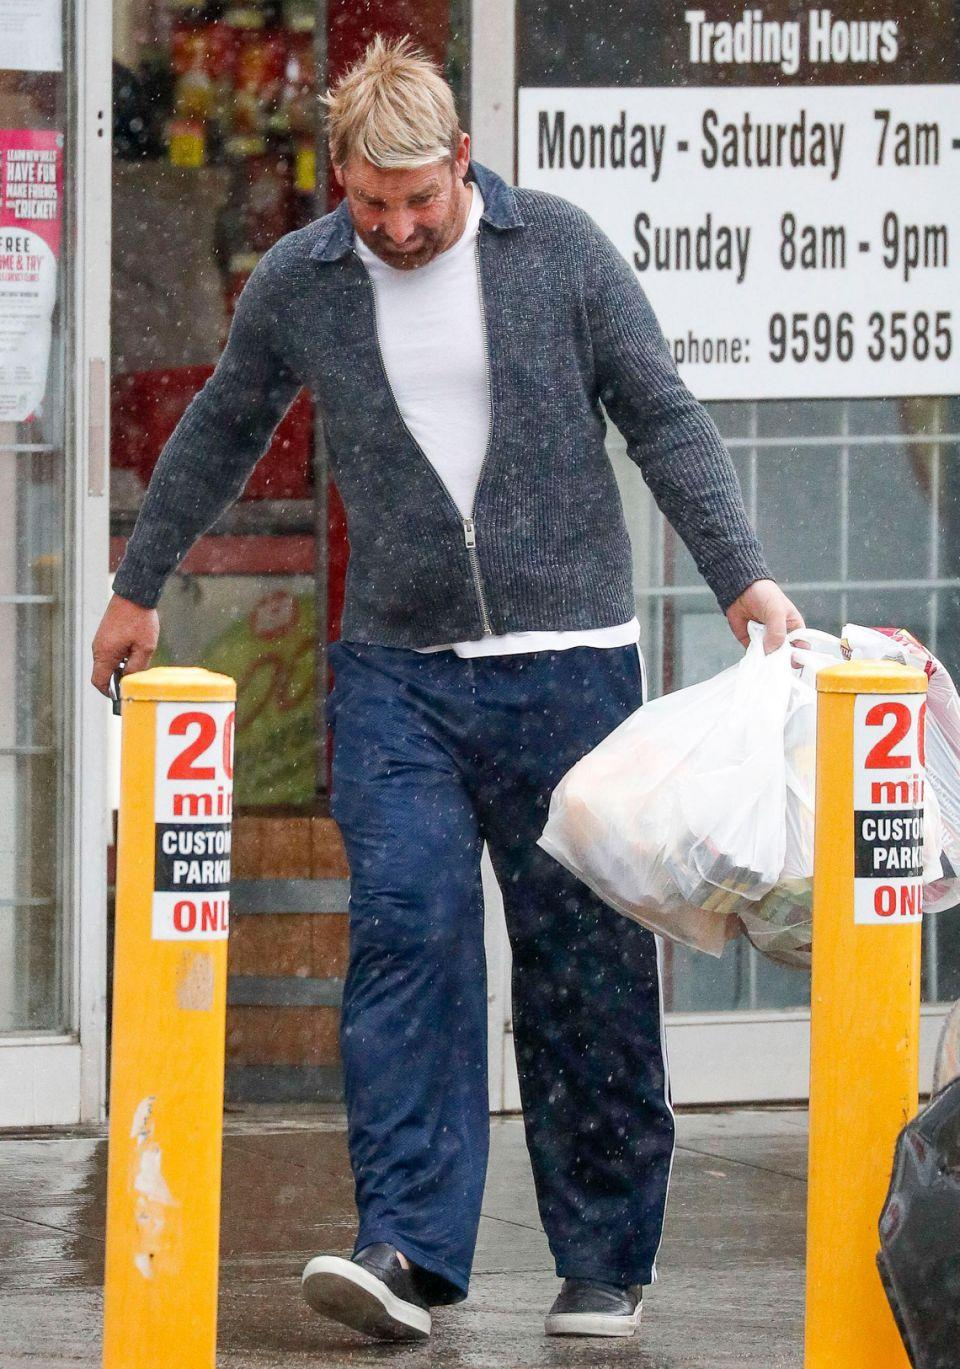 He certainly had his hands full thanks to several bags from the supermarket. Source: Media Mode